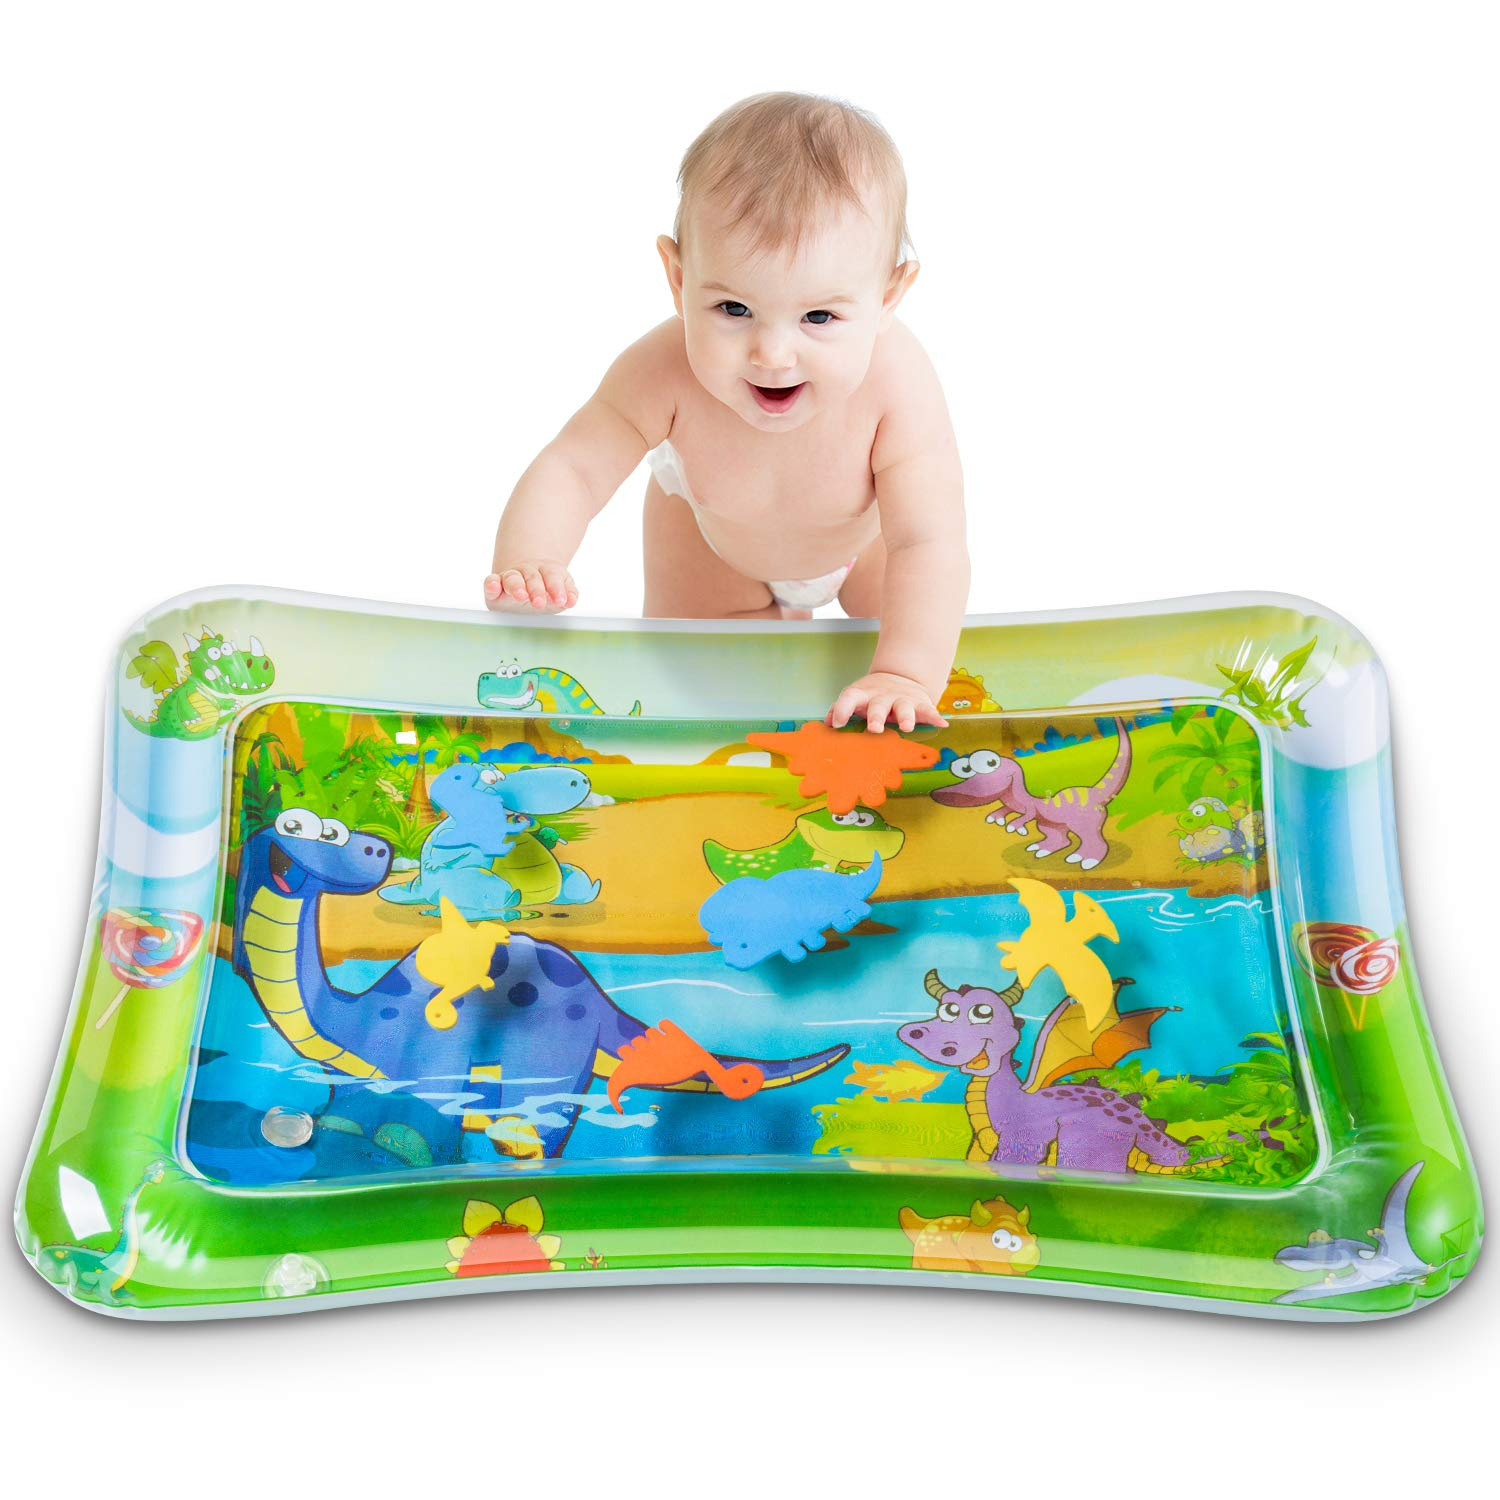 Tummy Time Baby Water Play Mat,Baby Inflatable Water Play Mat Activity Center Toy for Newborn Baby Infant Toddler Boy and Girl (Holiday and Baby Shower Gift) Physical Development Toys 3/6/9 Months